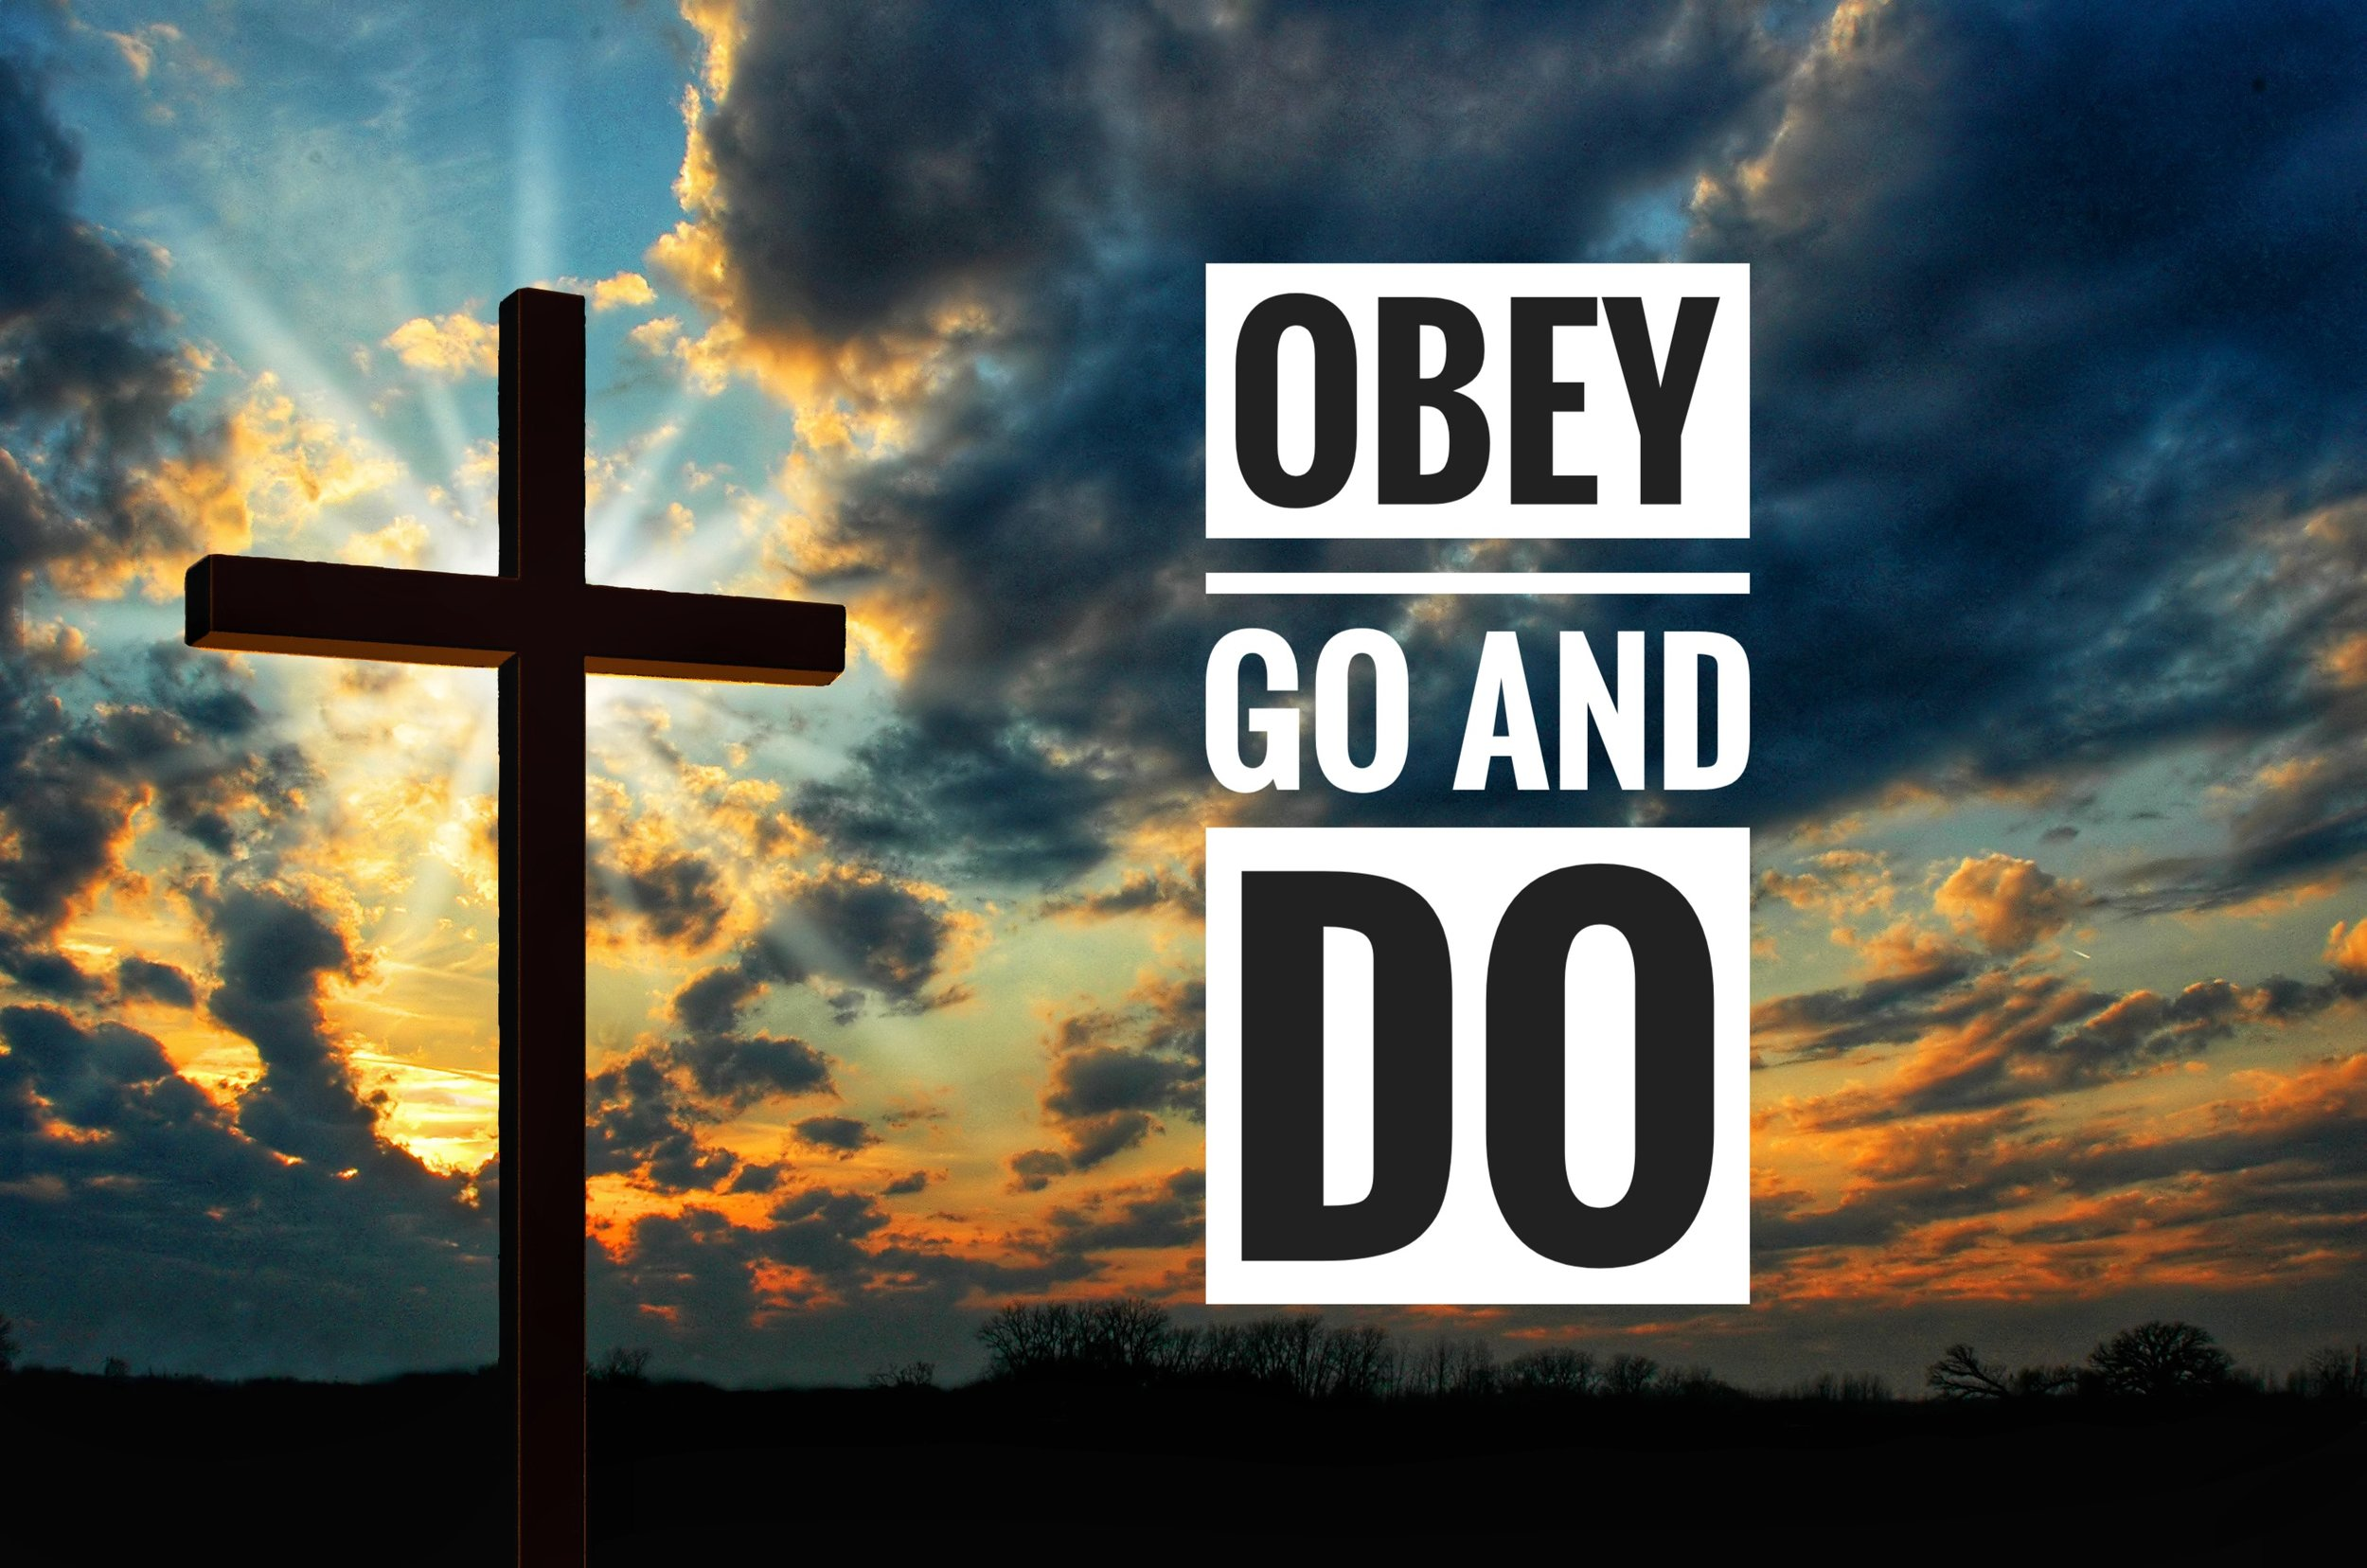 obey go and do 07.14.19.jpeg